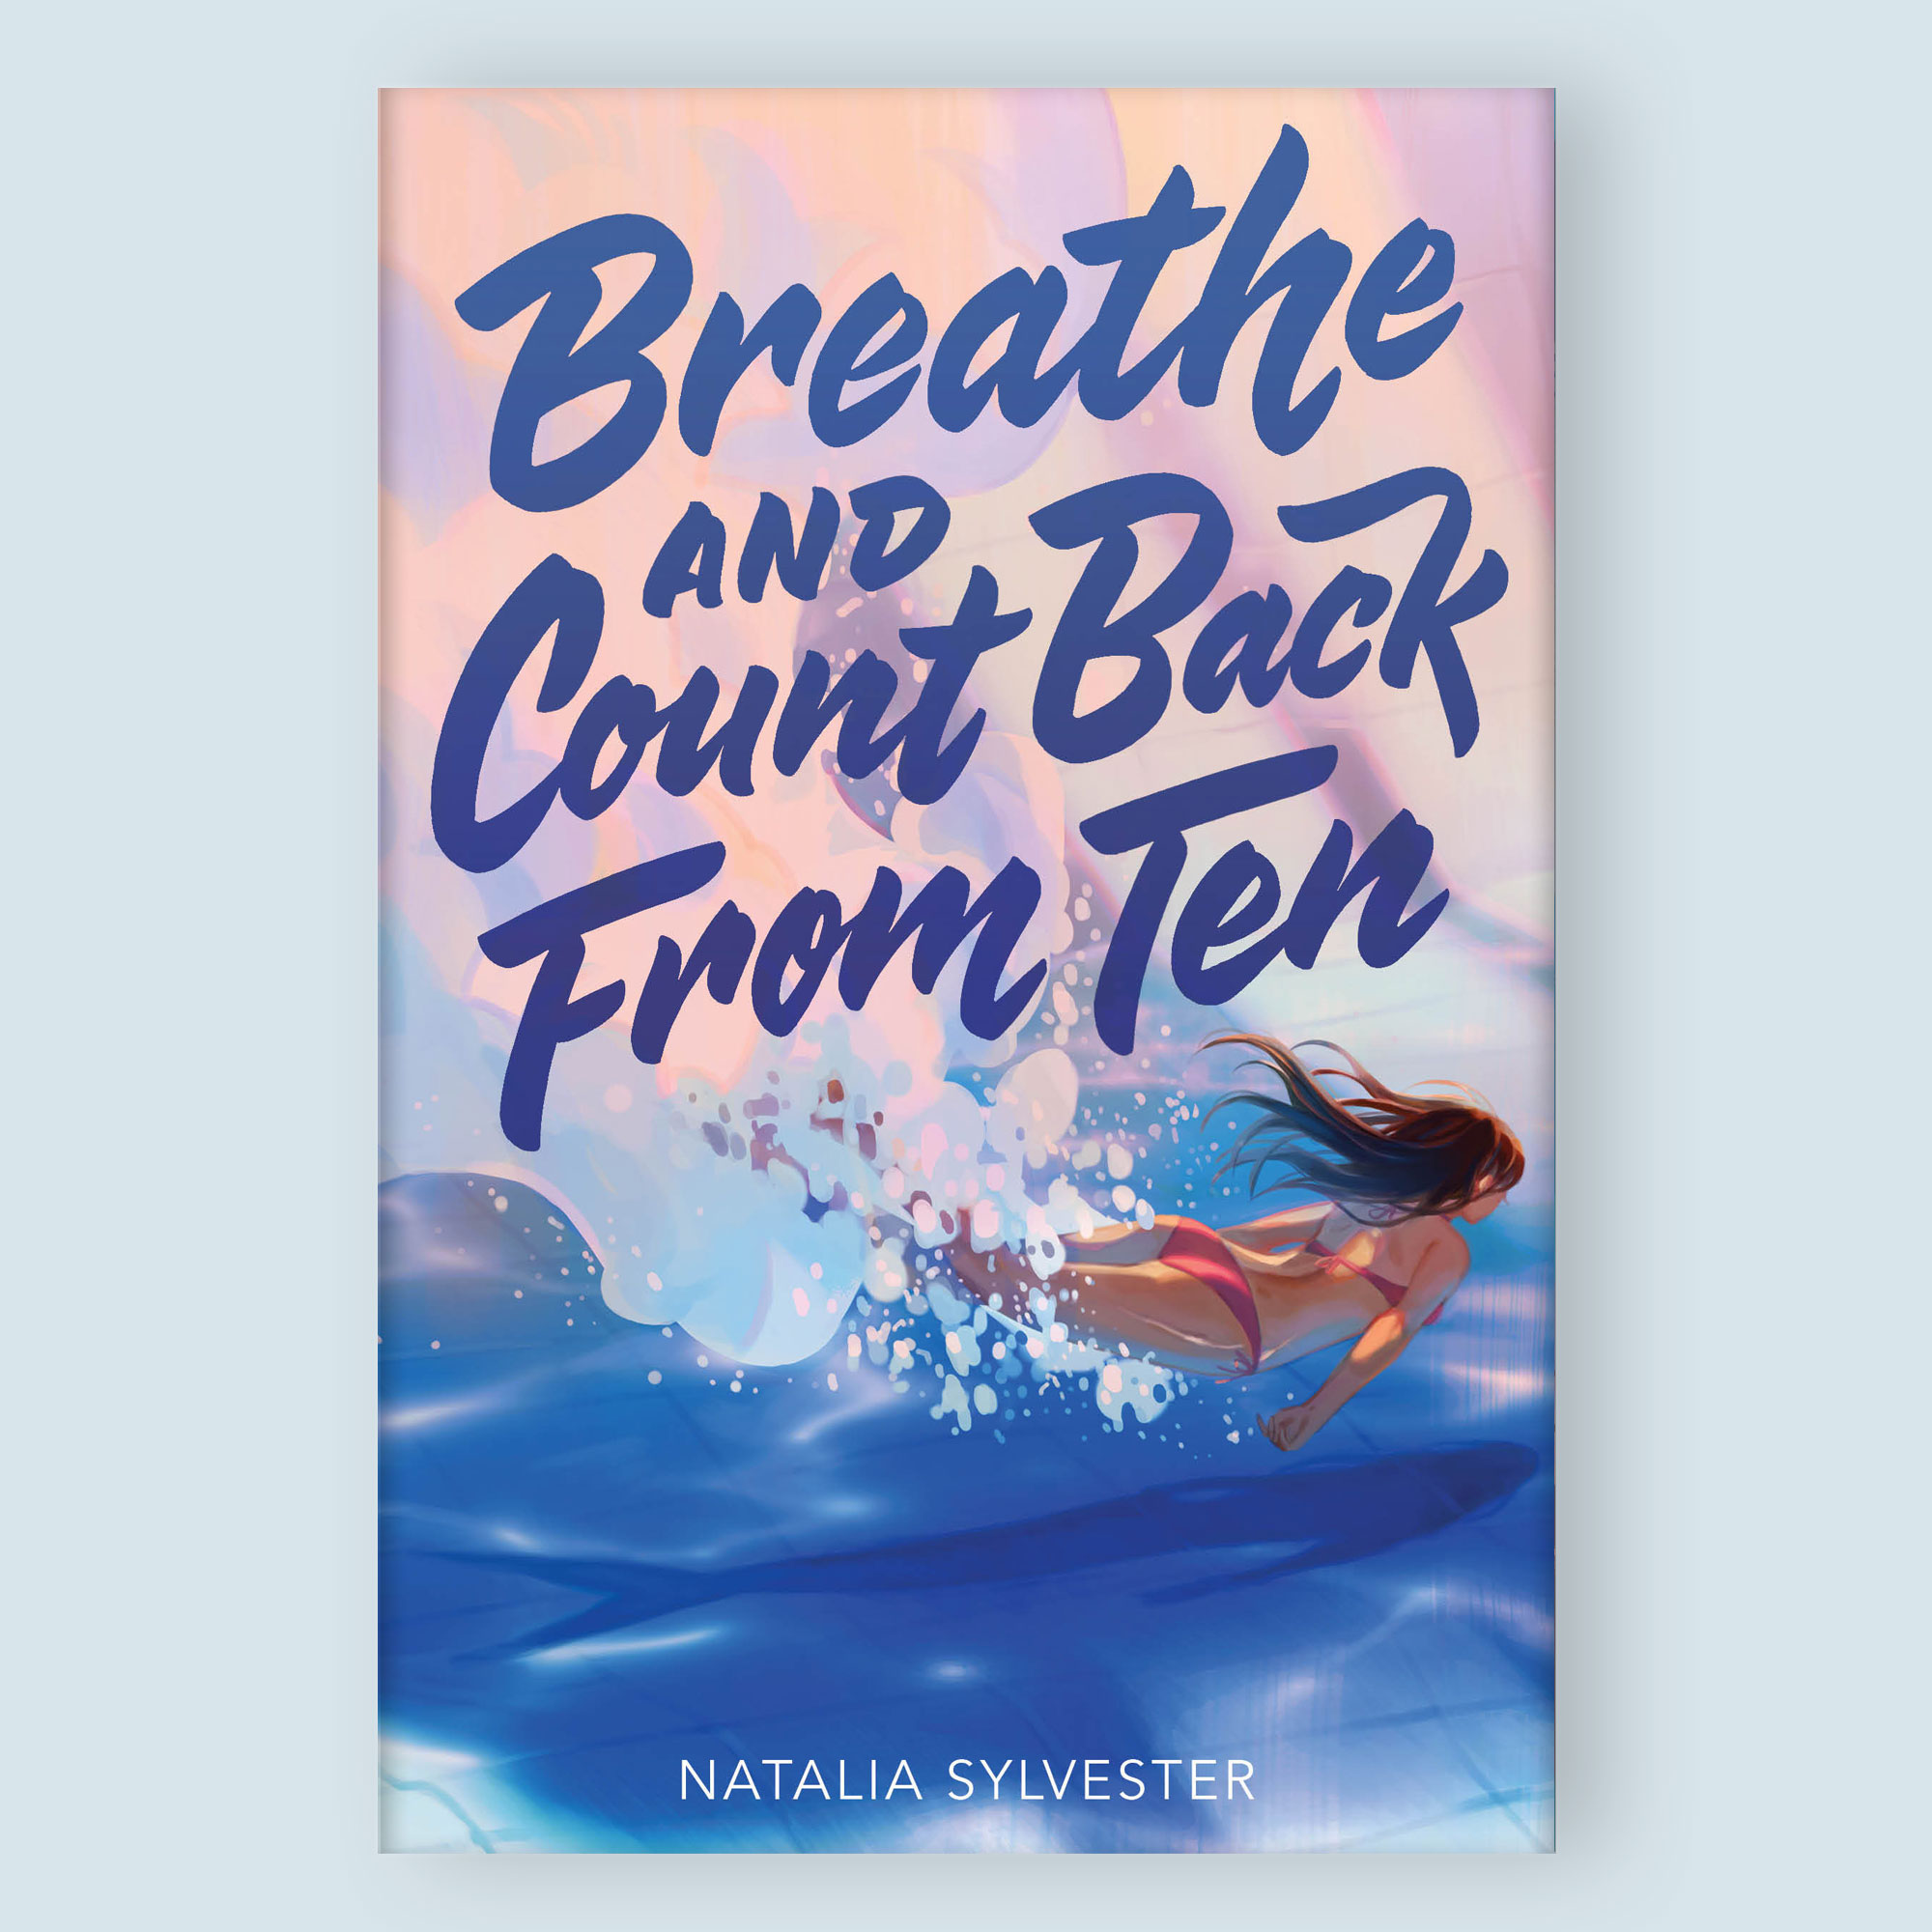 Breathe and Count Back from Ten